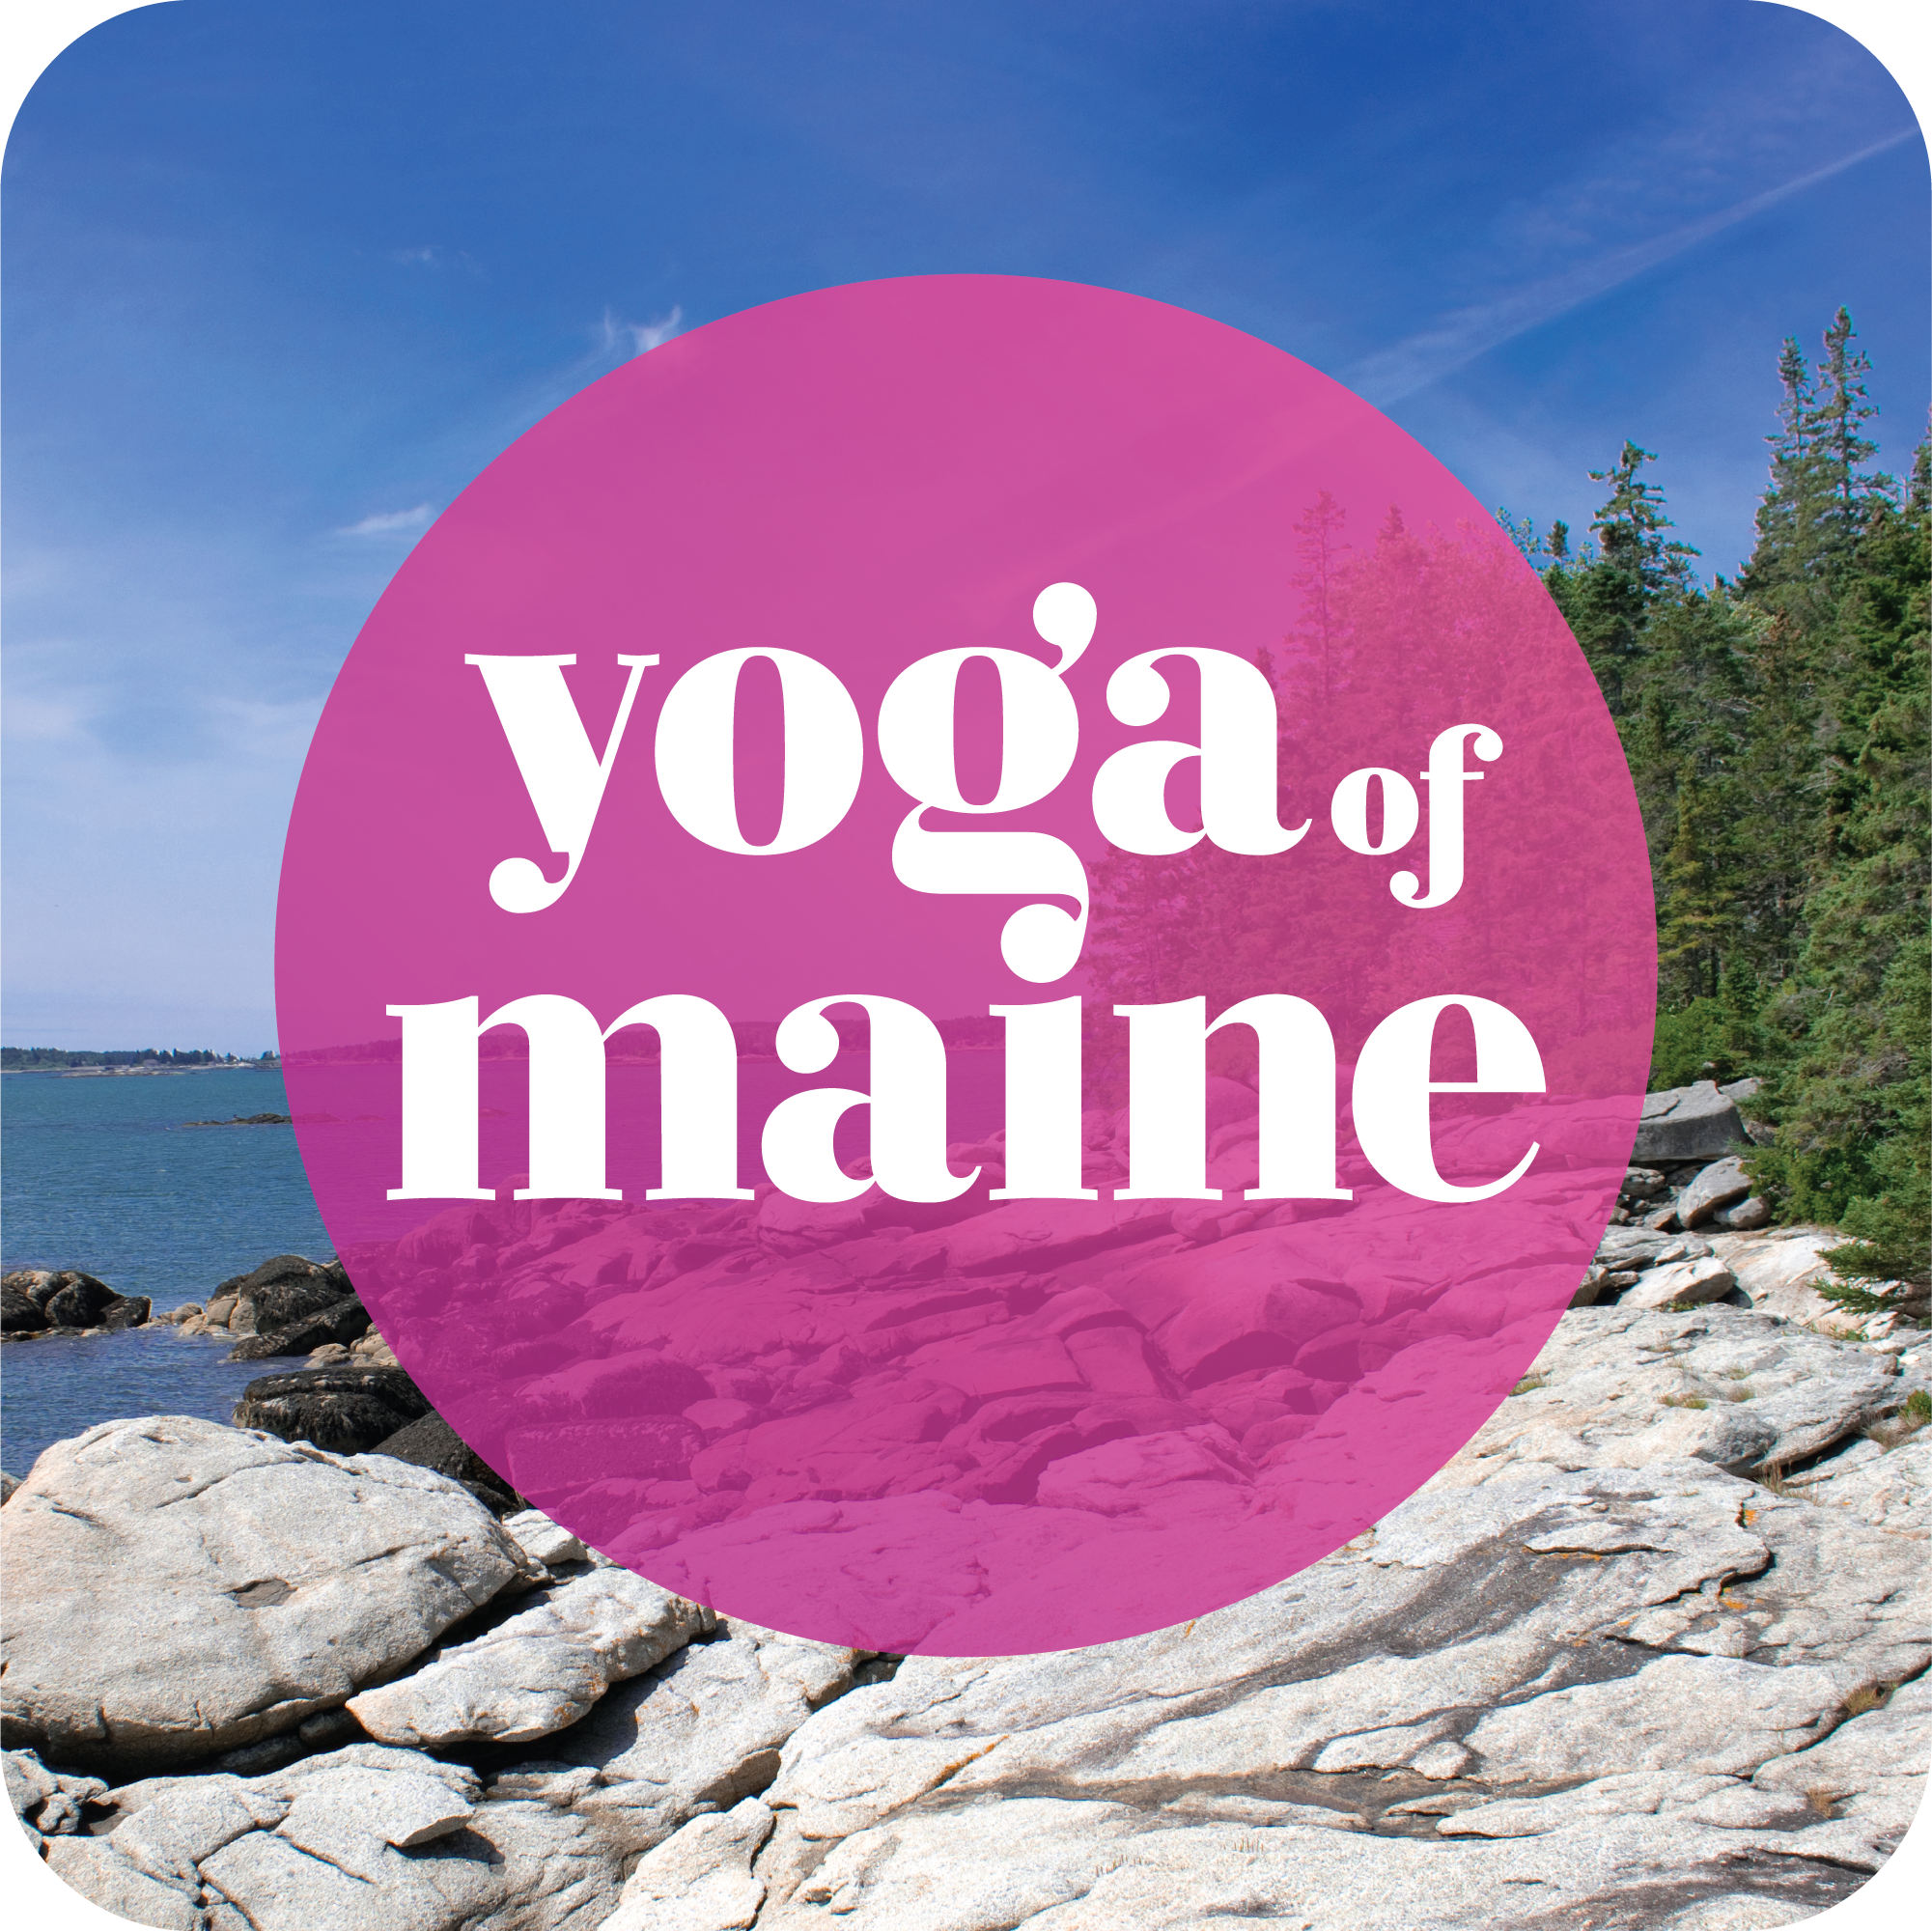 "- Yoga is meaningful to us in many ways, and others' stories can help us better understand our own paths.  This podcast connects you to the brightest yogic thinkers and deepest practitioners in Maine.  The state has become a hotspot for yoga with inspiring teachers, organizations and businesses contributing to the growing community.  Of course, you do not need to live in Maine or even been to ""Vacationland"" to glean insights from the conversations on this podcast.  This space is to exchange thoughts, share insights, receive bits of clarity, and spark curiosity.  The internal world of yoga will be made visible here through dialogue, connecting us to each other."